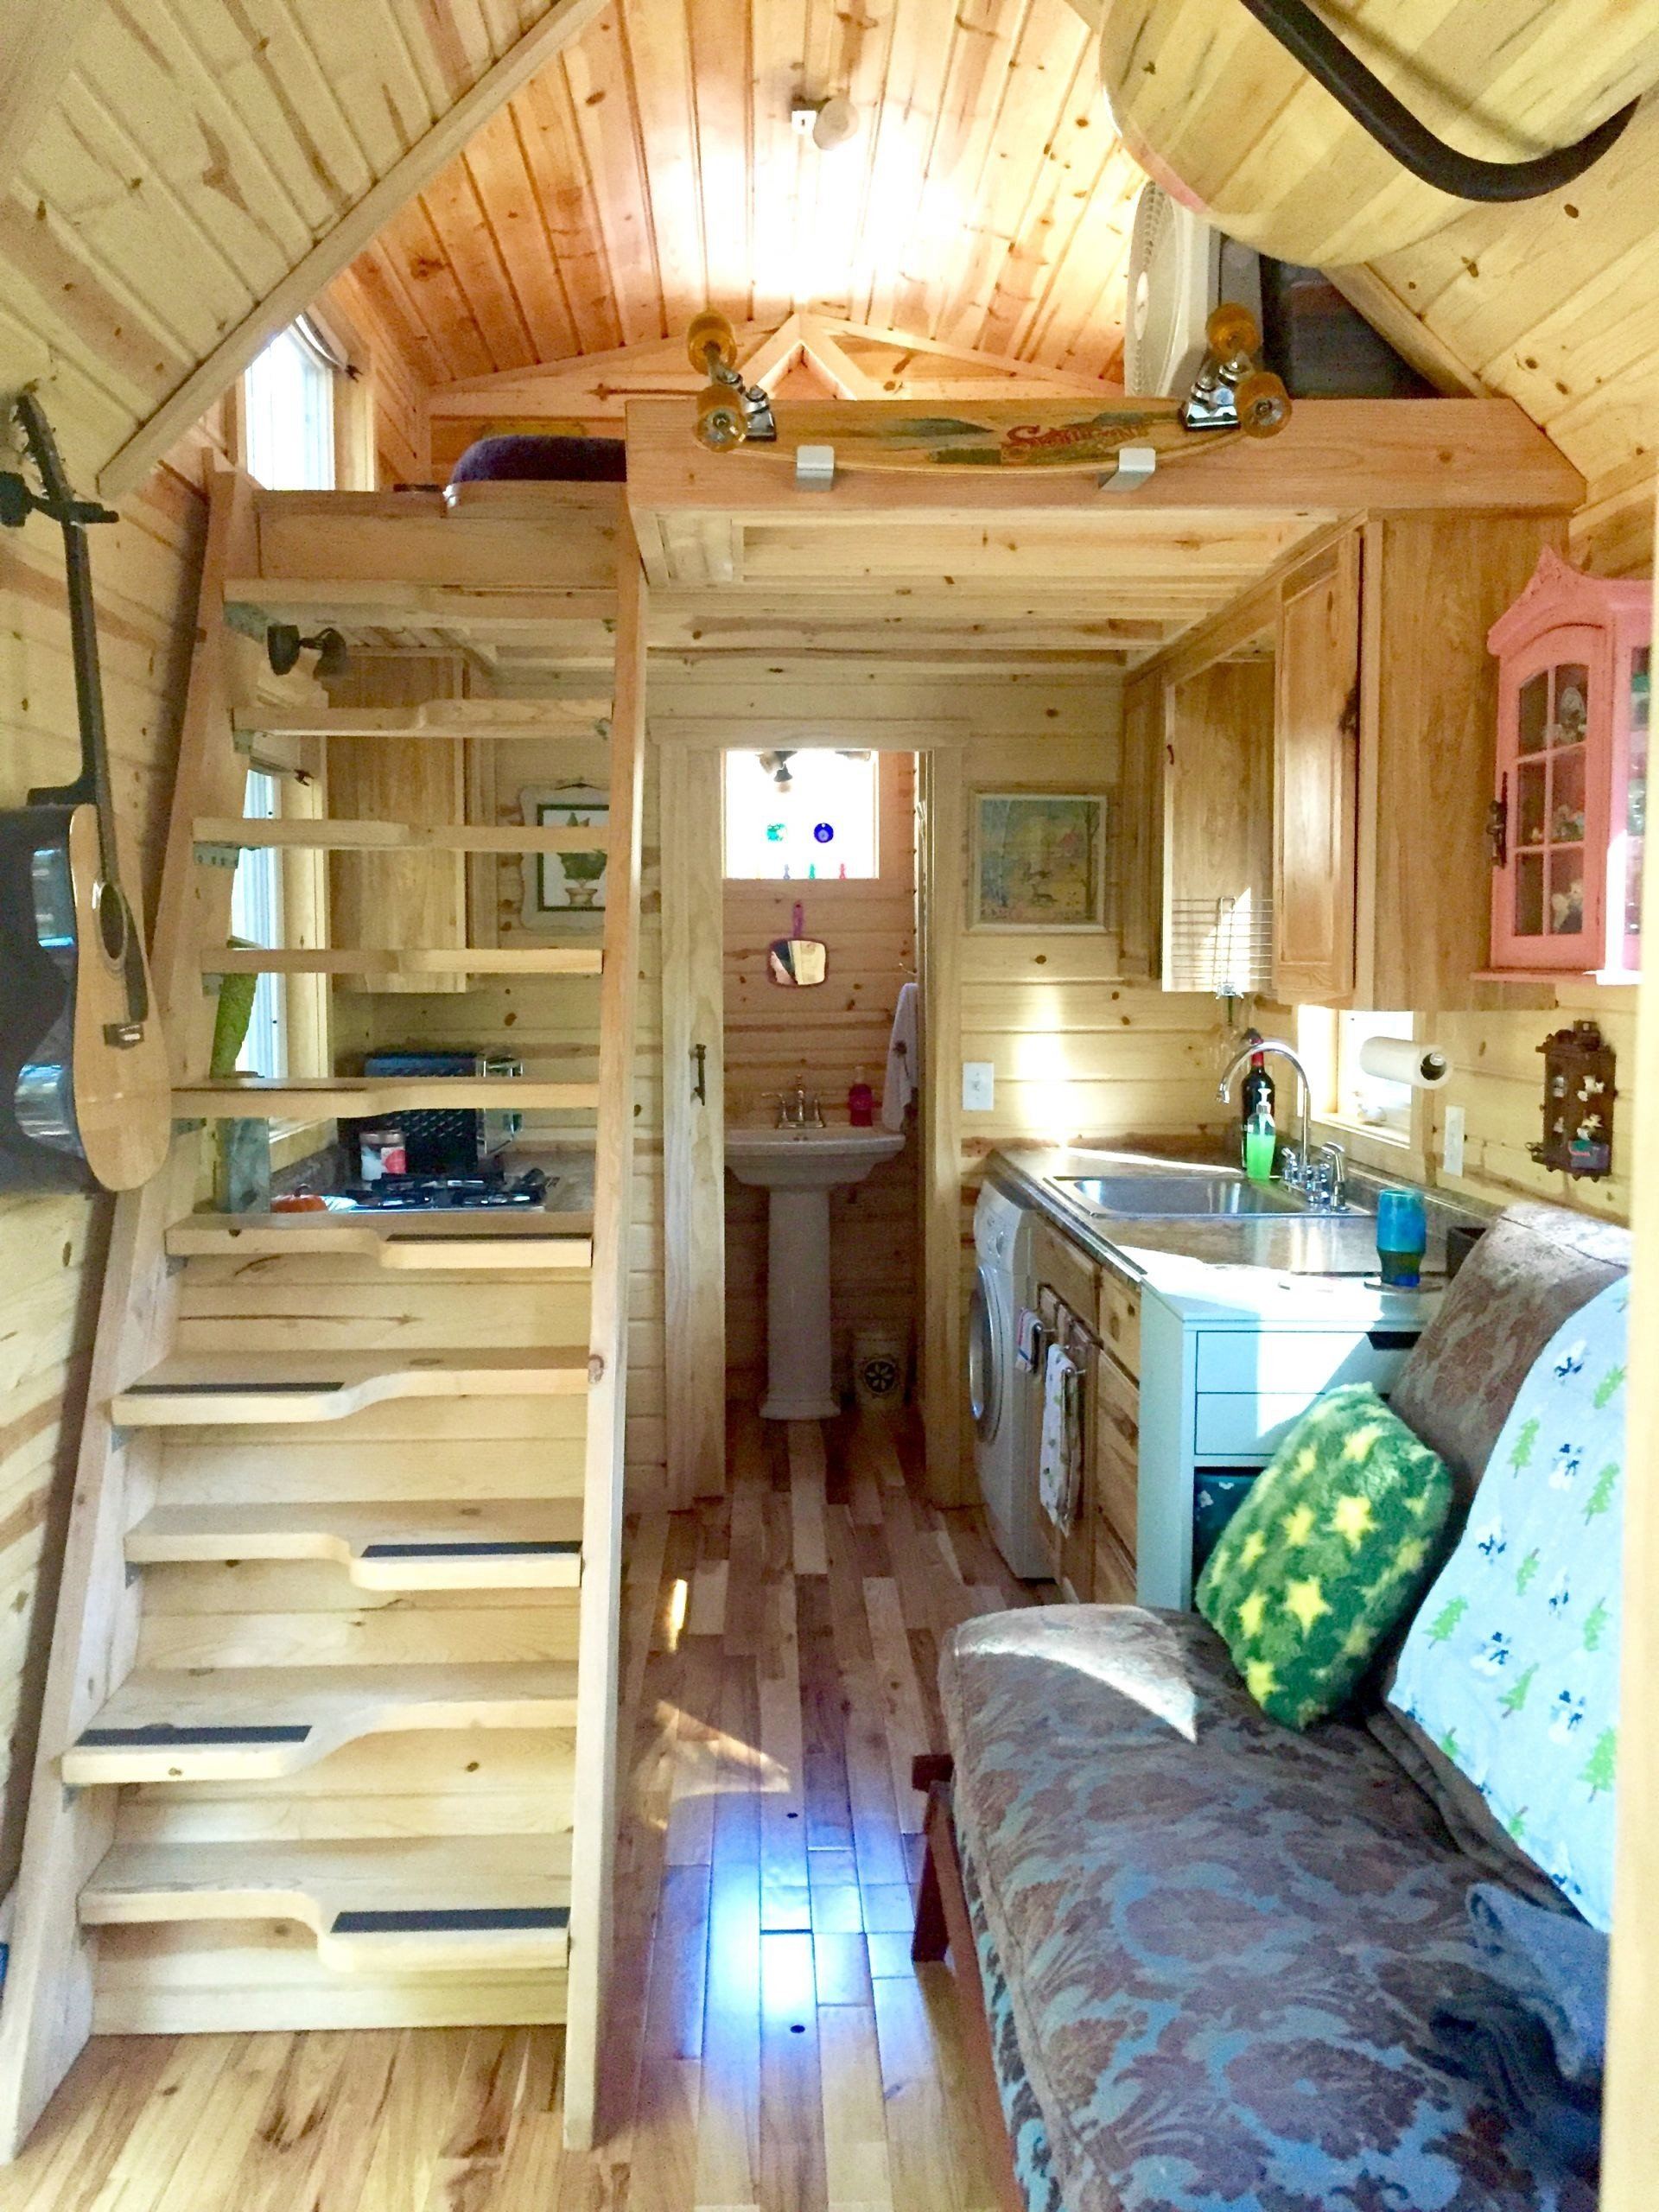 10 Beautiful Small Cabin Interior Design Ideas small cabin interior design ideas beautiful nicki s colorful 2020